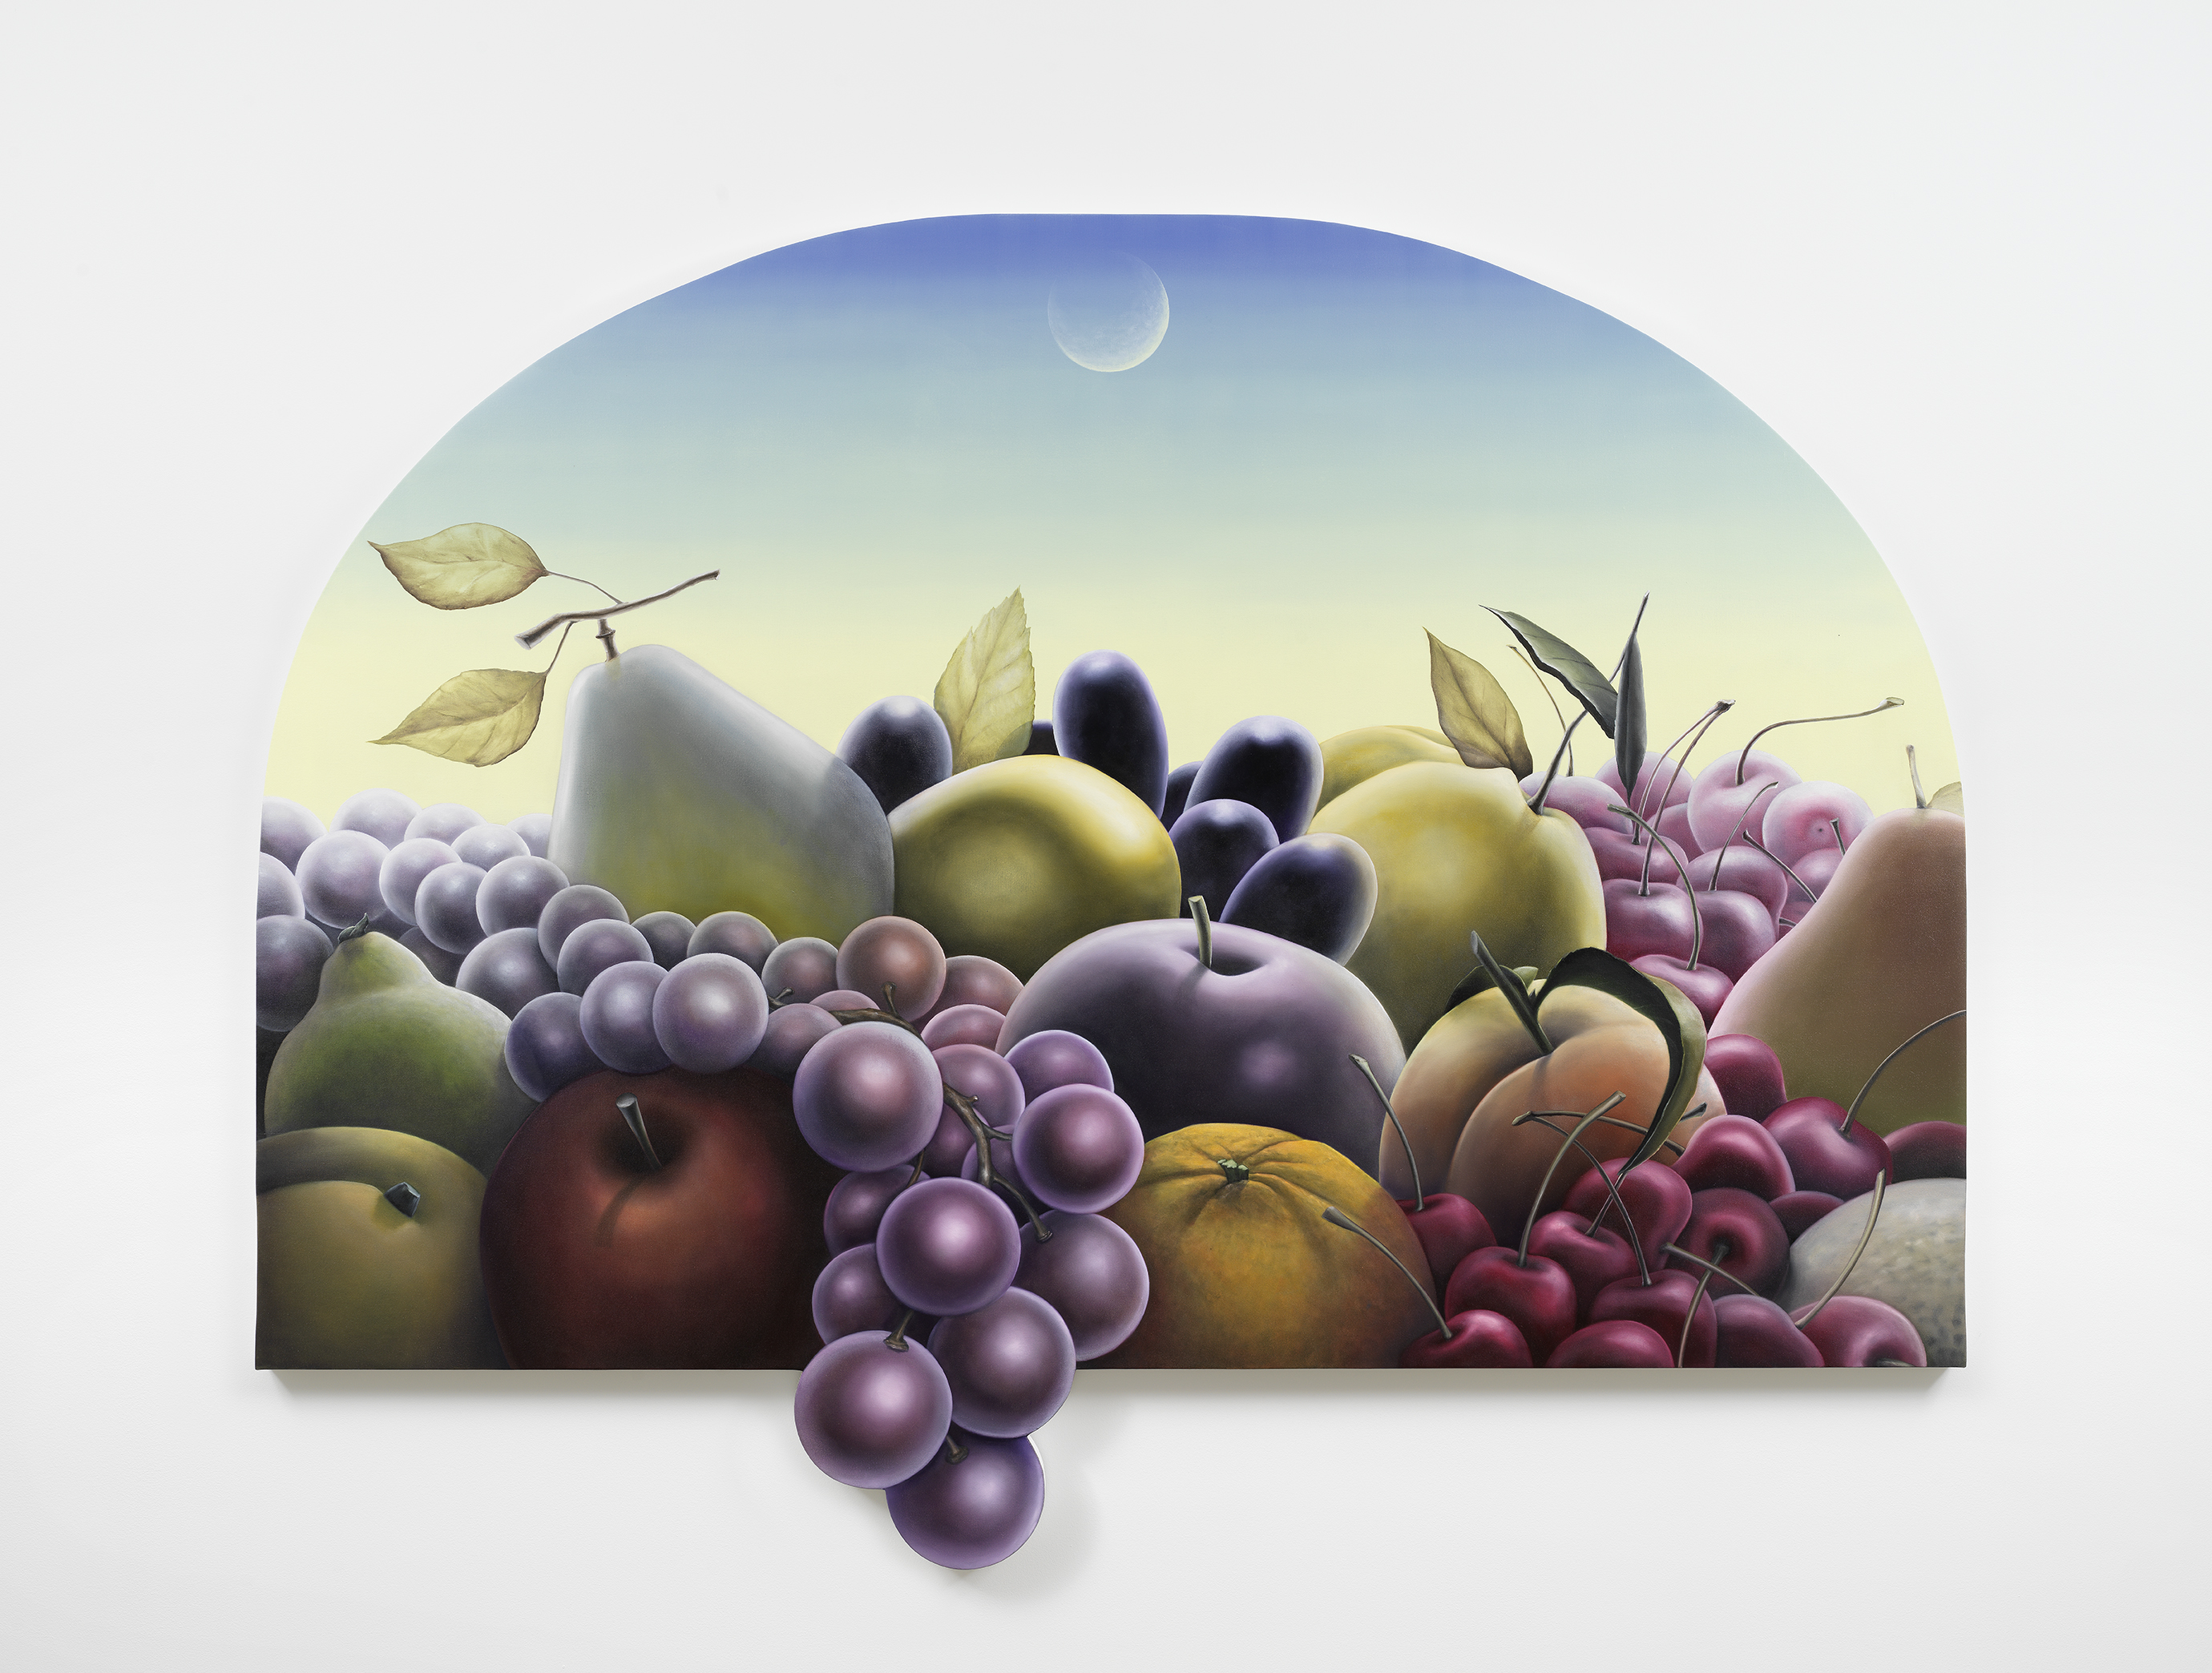 Emily Mae Smith, Fruits of Labour, 2018. Courtesy of the artist and Perrotin.